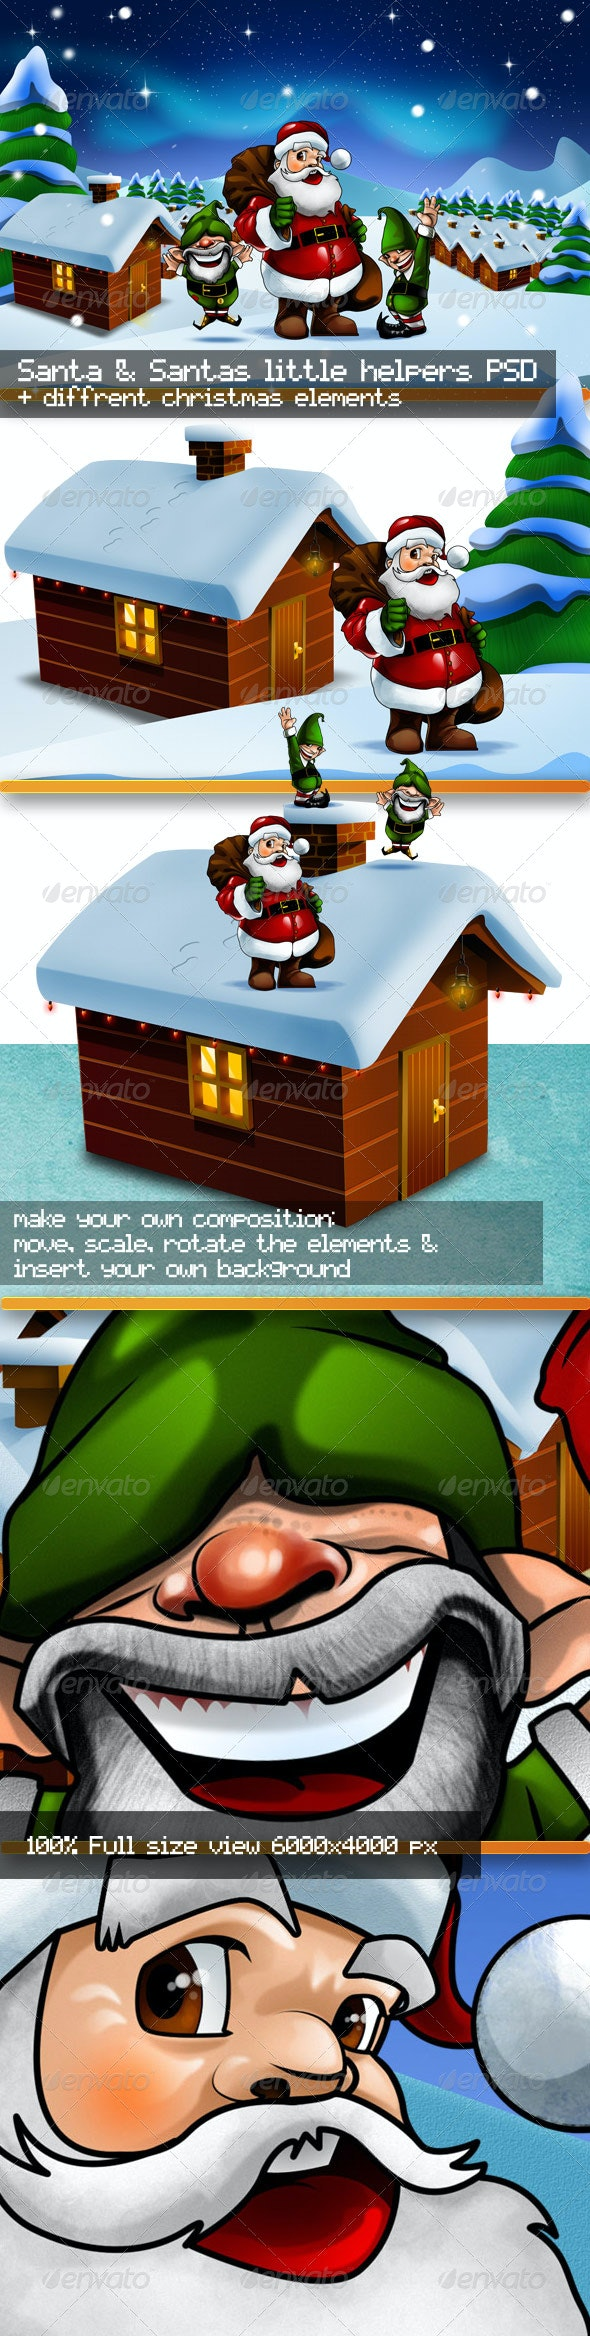 Santa Claus and Santa's Little Helpers PSD Kit - Characters Illustrations